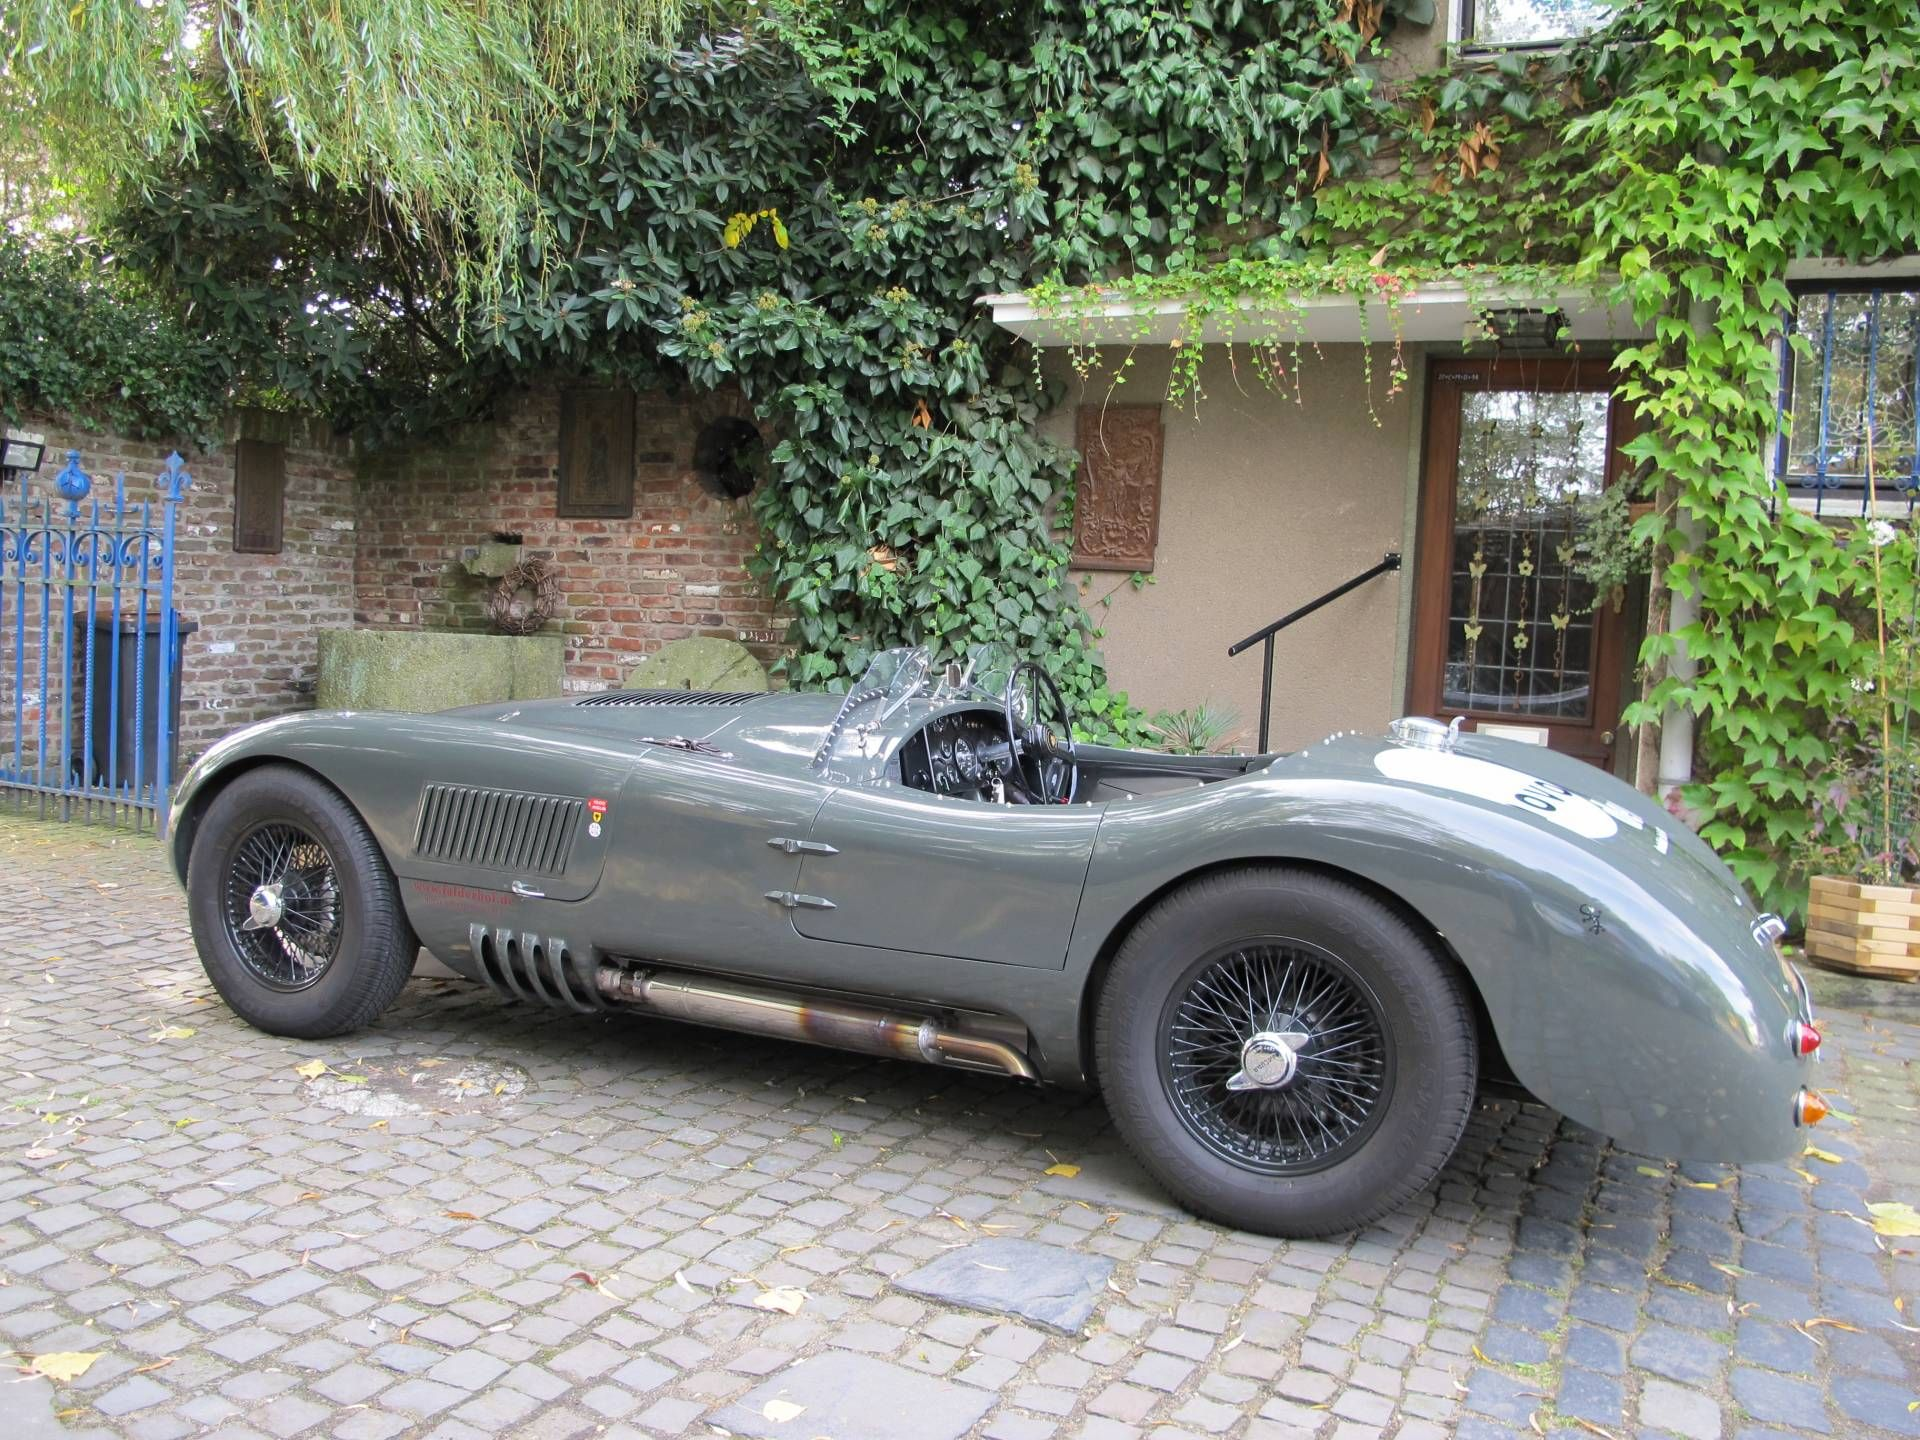 jaguar xk 120 c c type for sale oldtimer autos. Black Bedroom Furniture Sets. Home Design Ideas